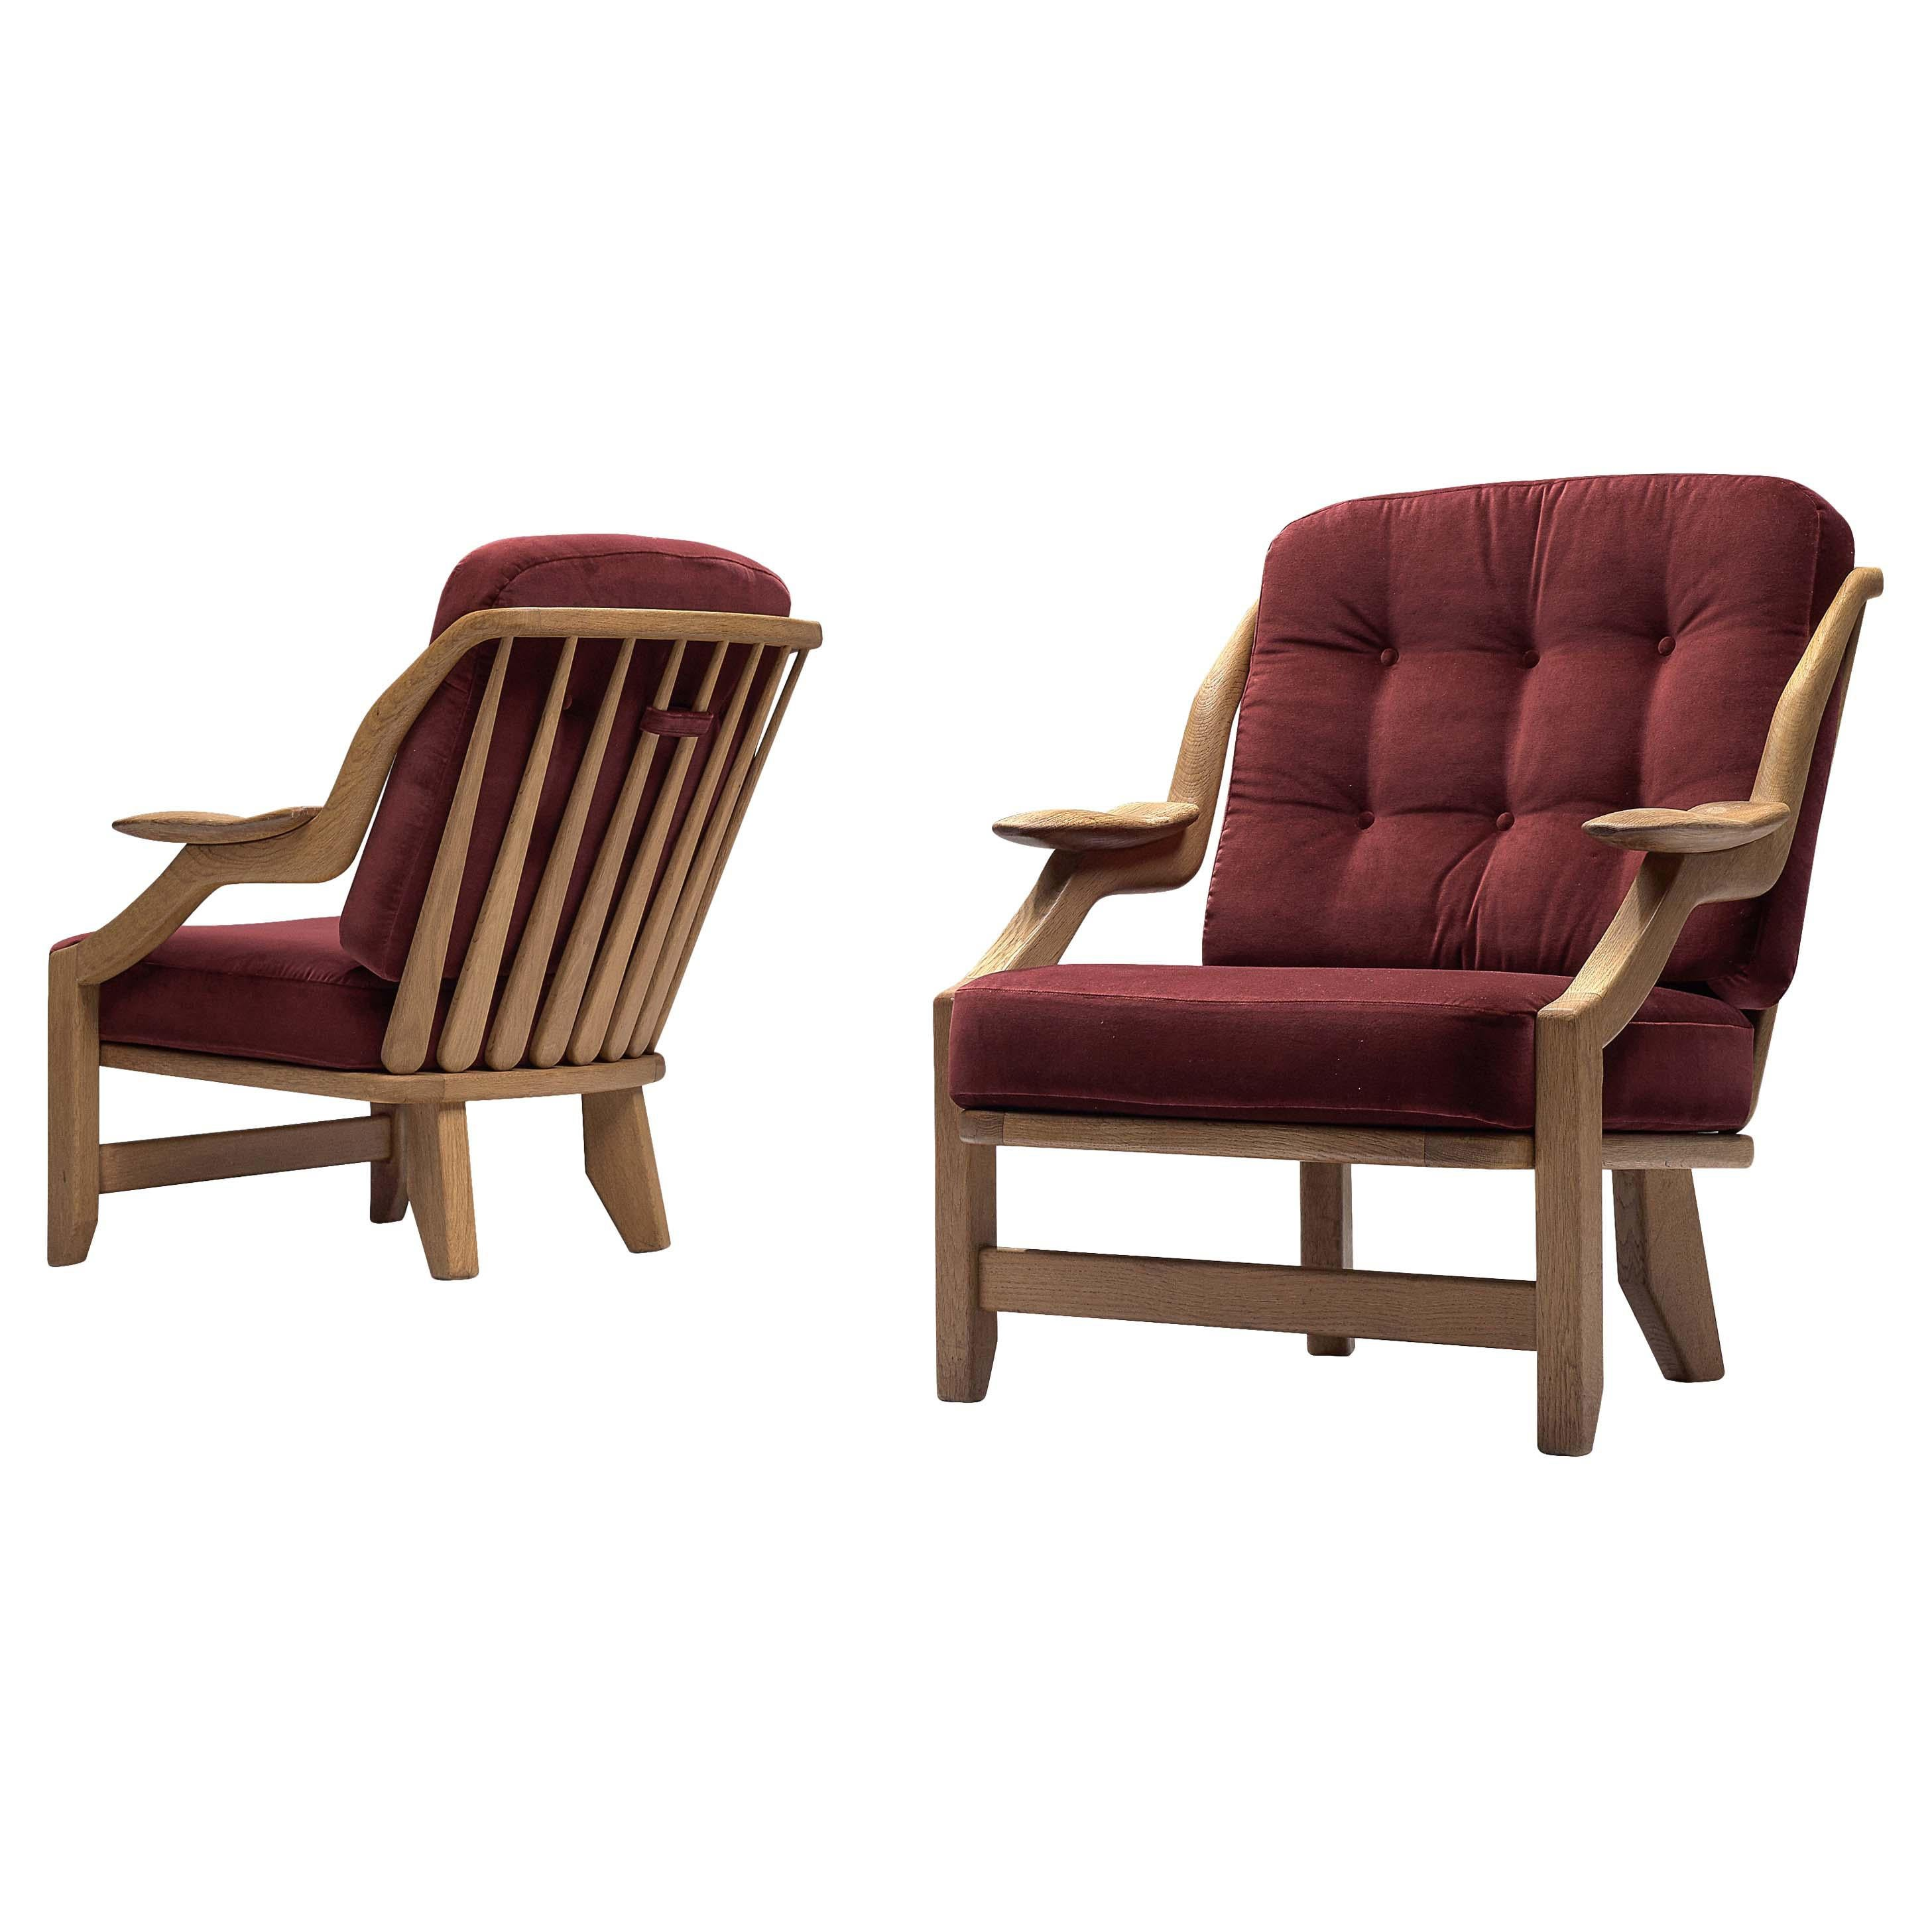 Guillerme et Chambron Pair of 'Gregoire' Lounge Chairs in Burgundy Upholstery